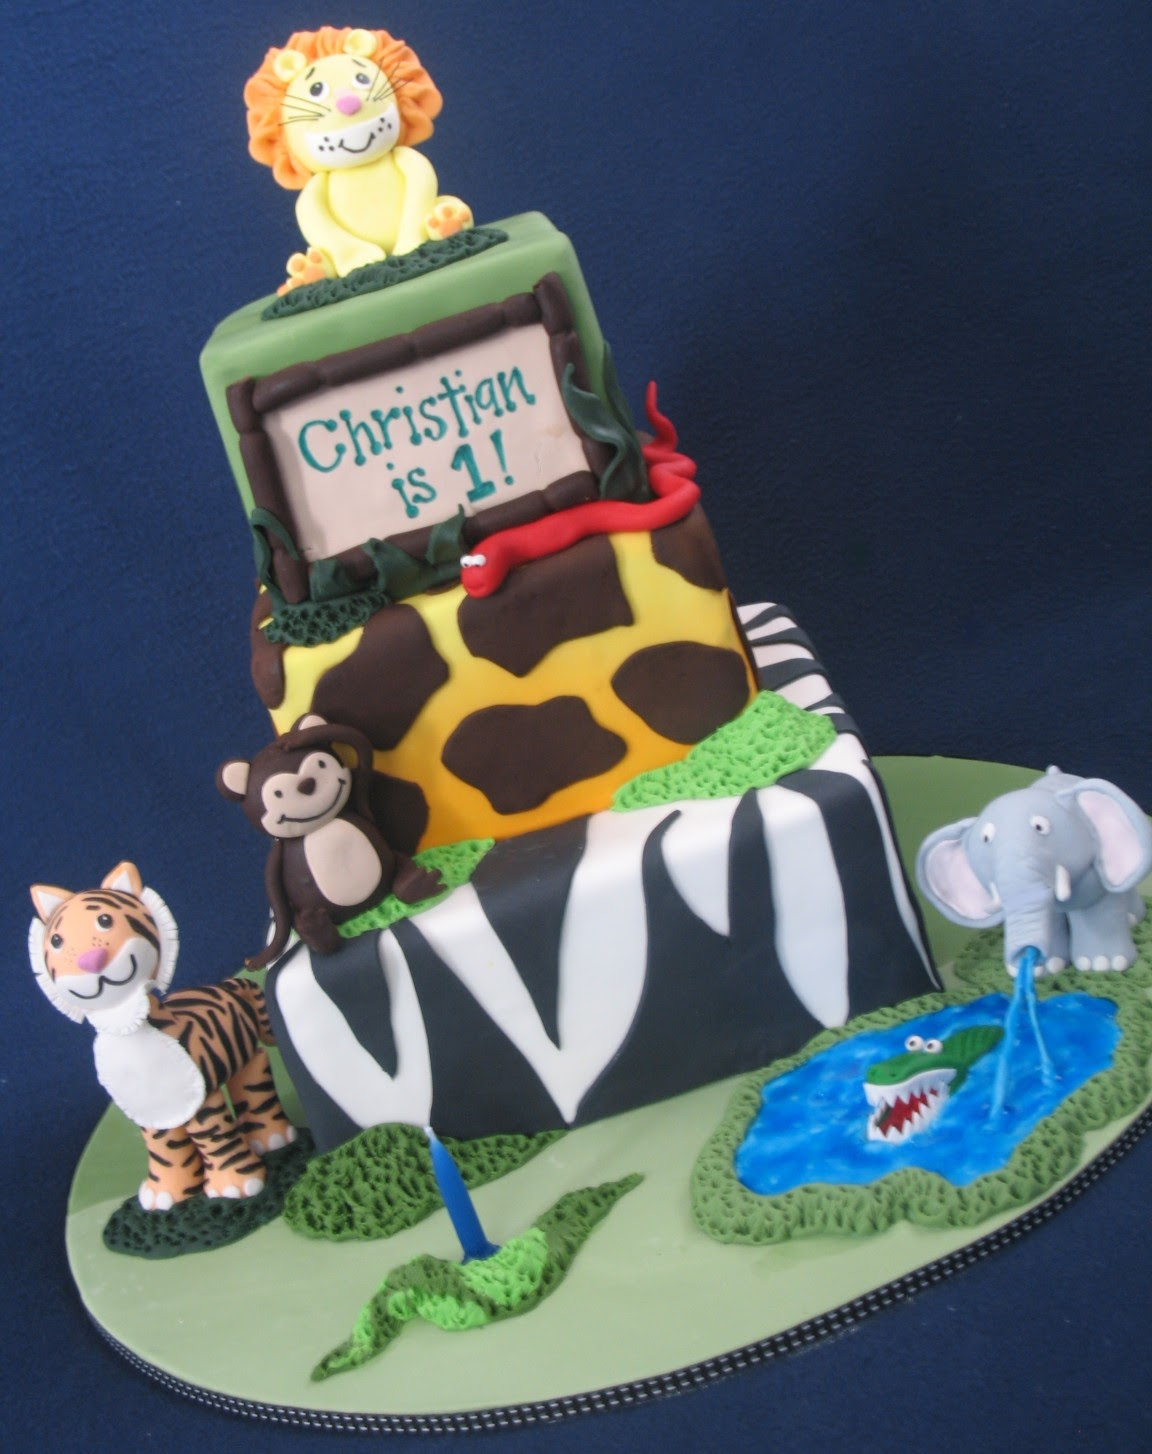 Blissfully Sweet A Jungle Themed 1st Birthday Cake for a Lion King